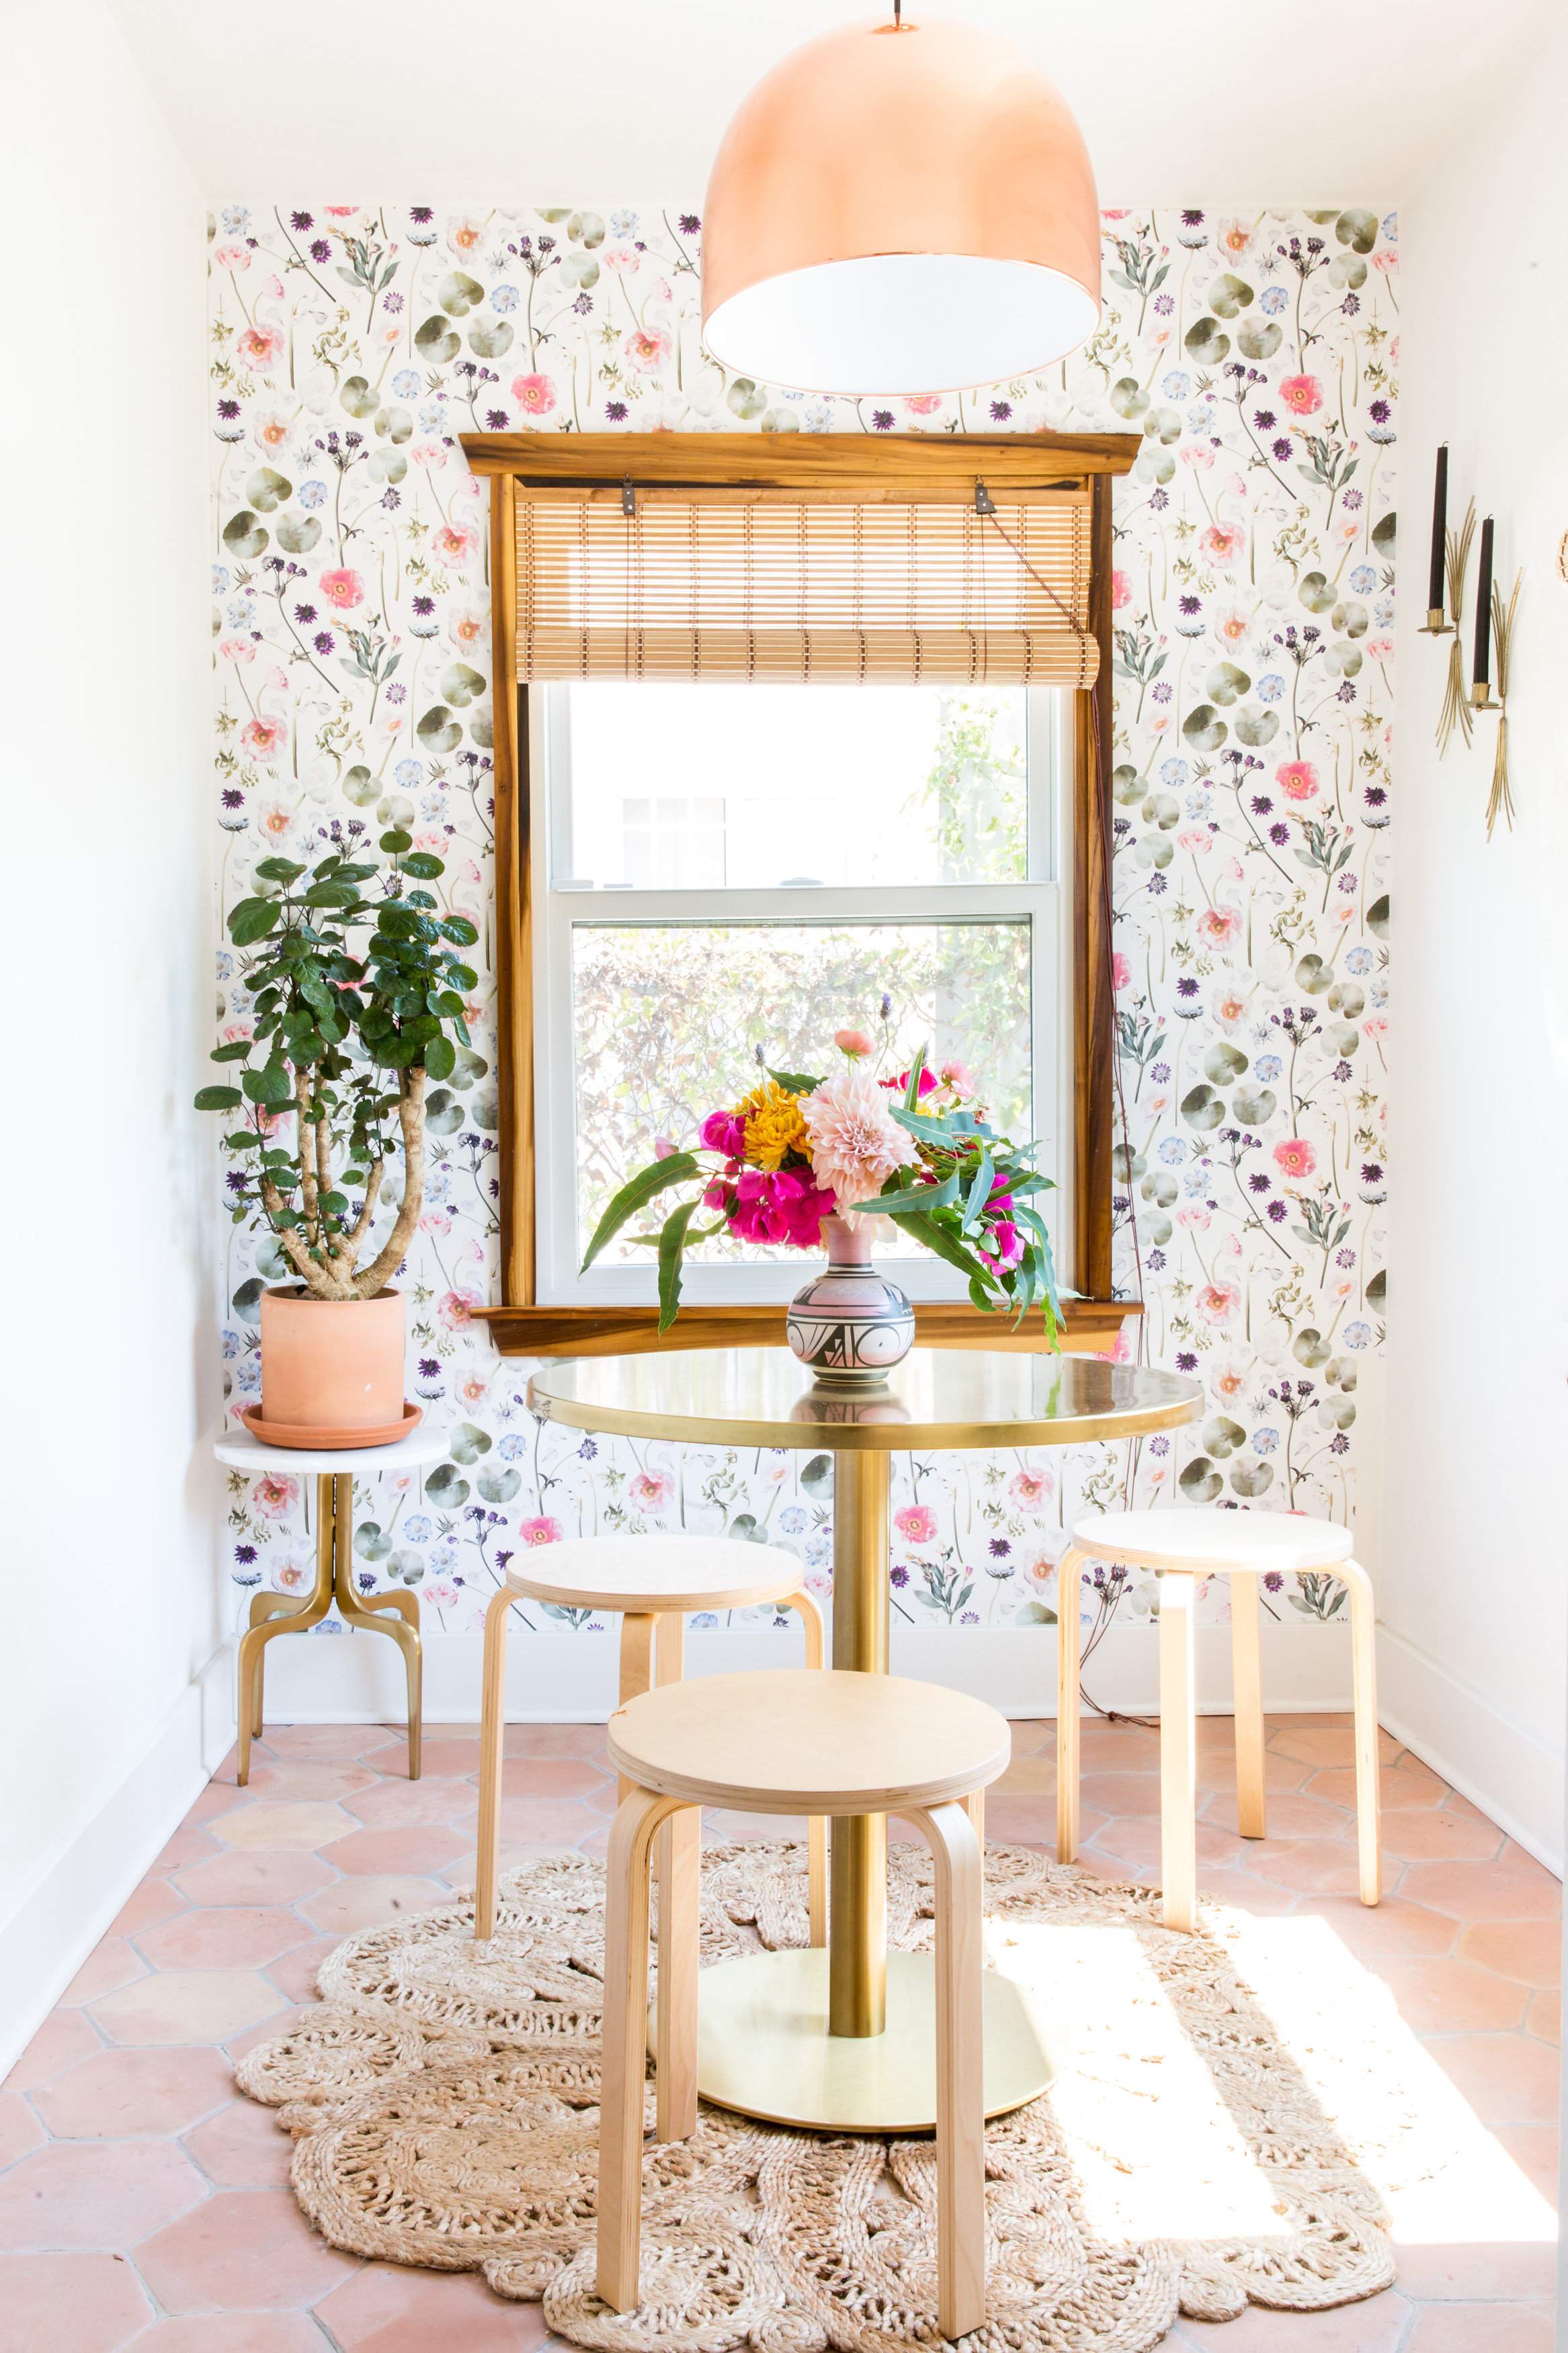 Floral Finds Removable Fabric Wallpaper Peel And Stick